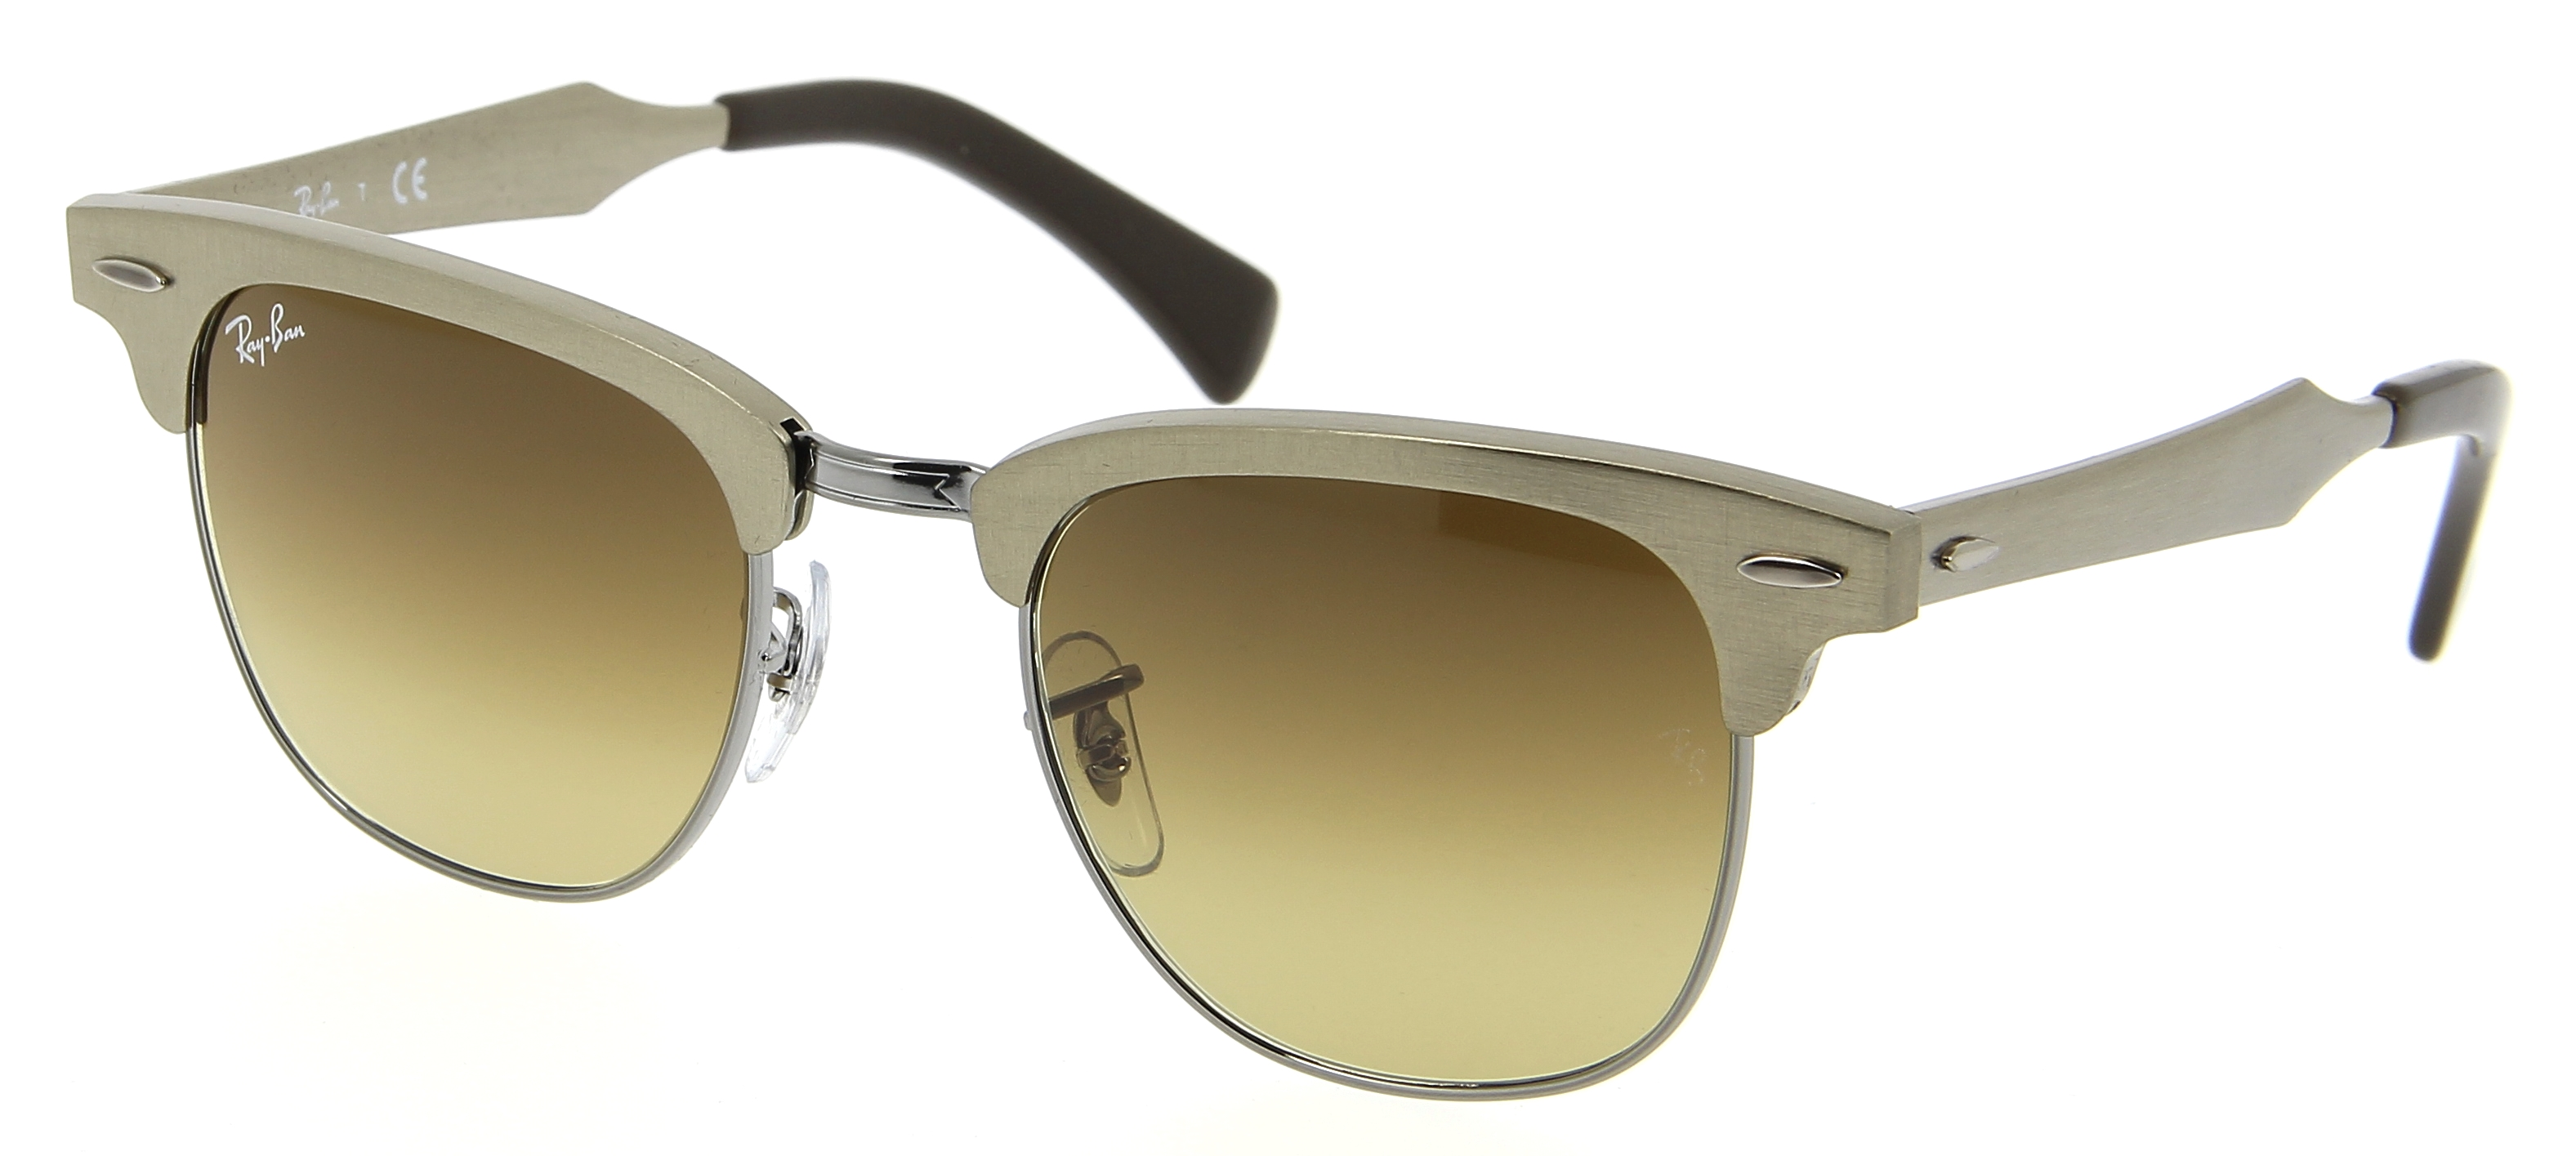 ray ban pas cher optical center  ray ban clubmaster optical center